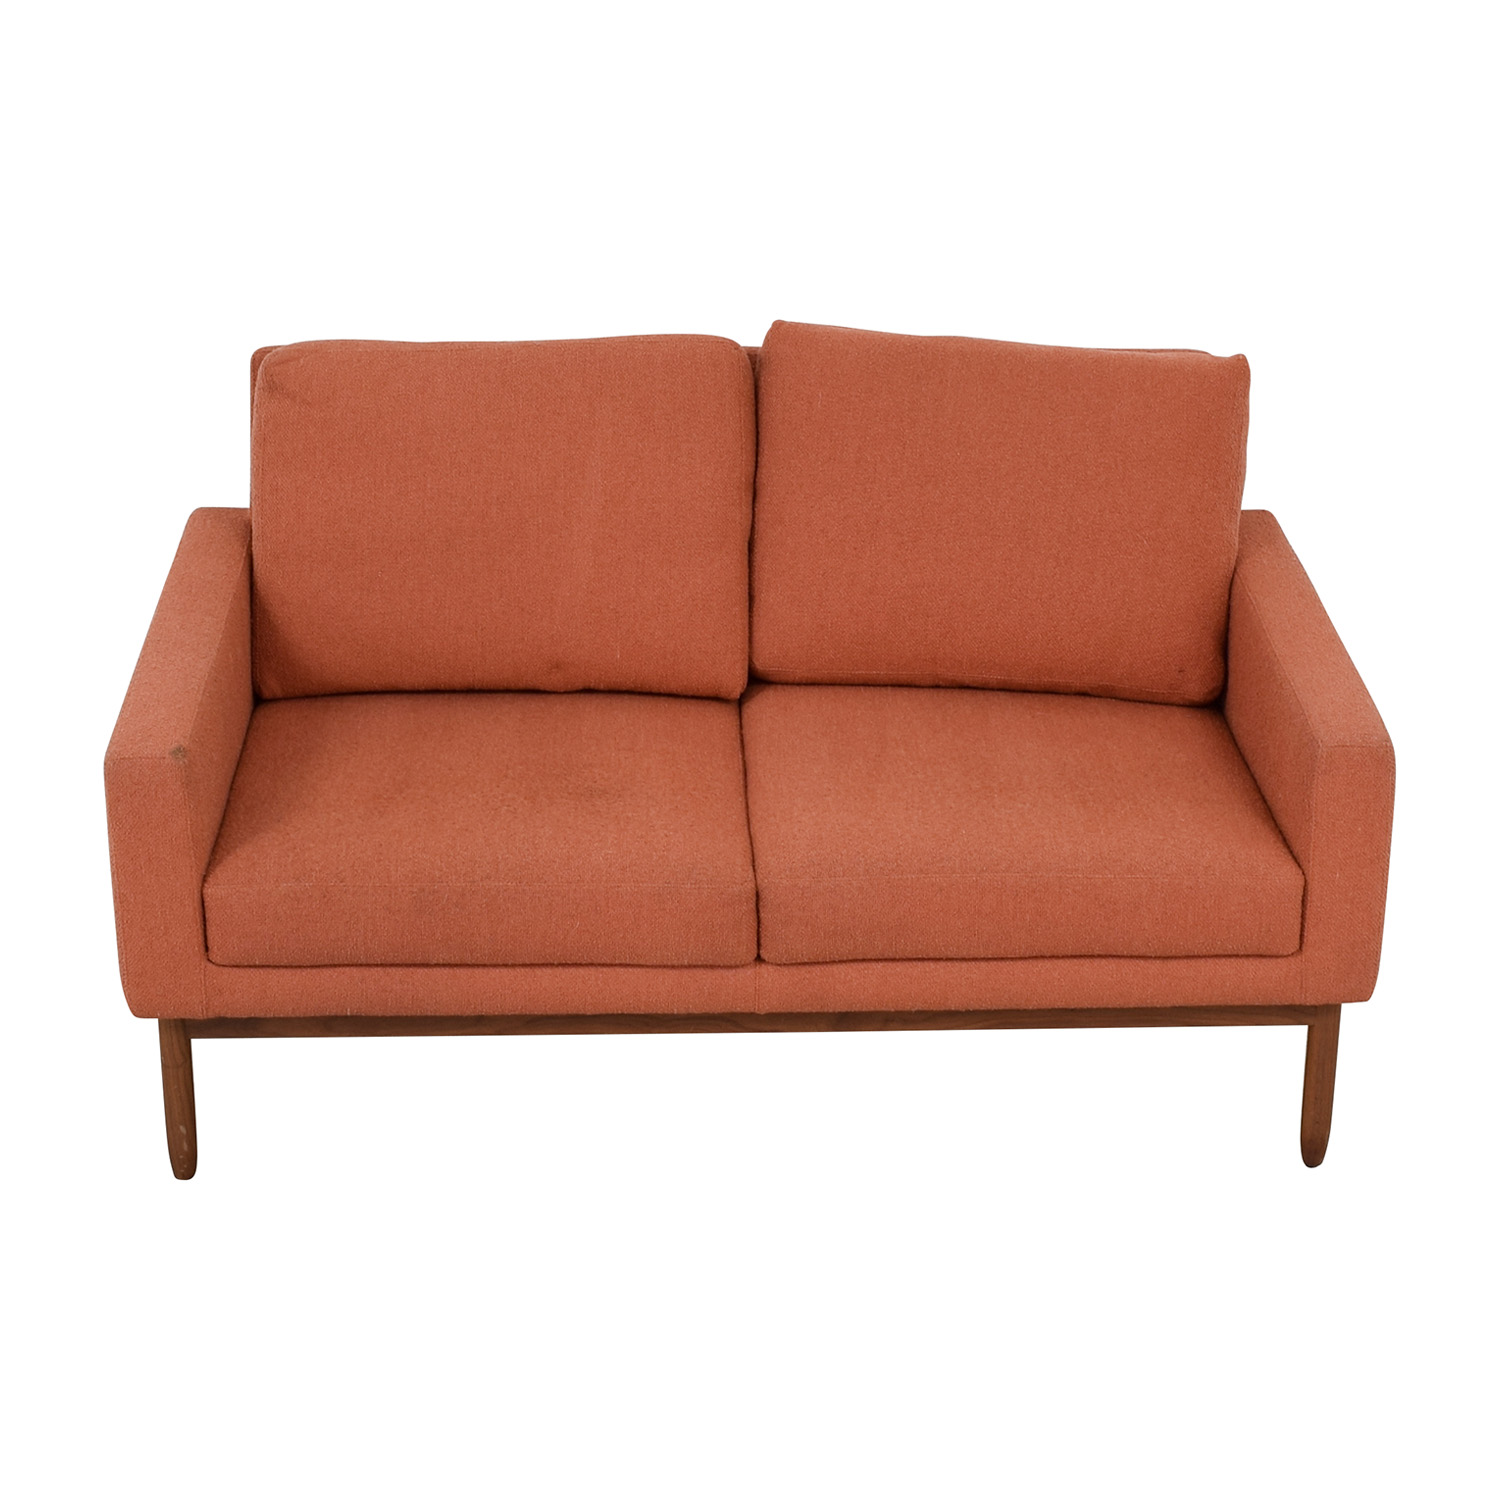 Design Within Reach Design Within Reach Raleigh Paprika Two-Cushion Sofa for sale